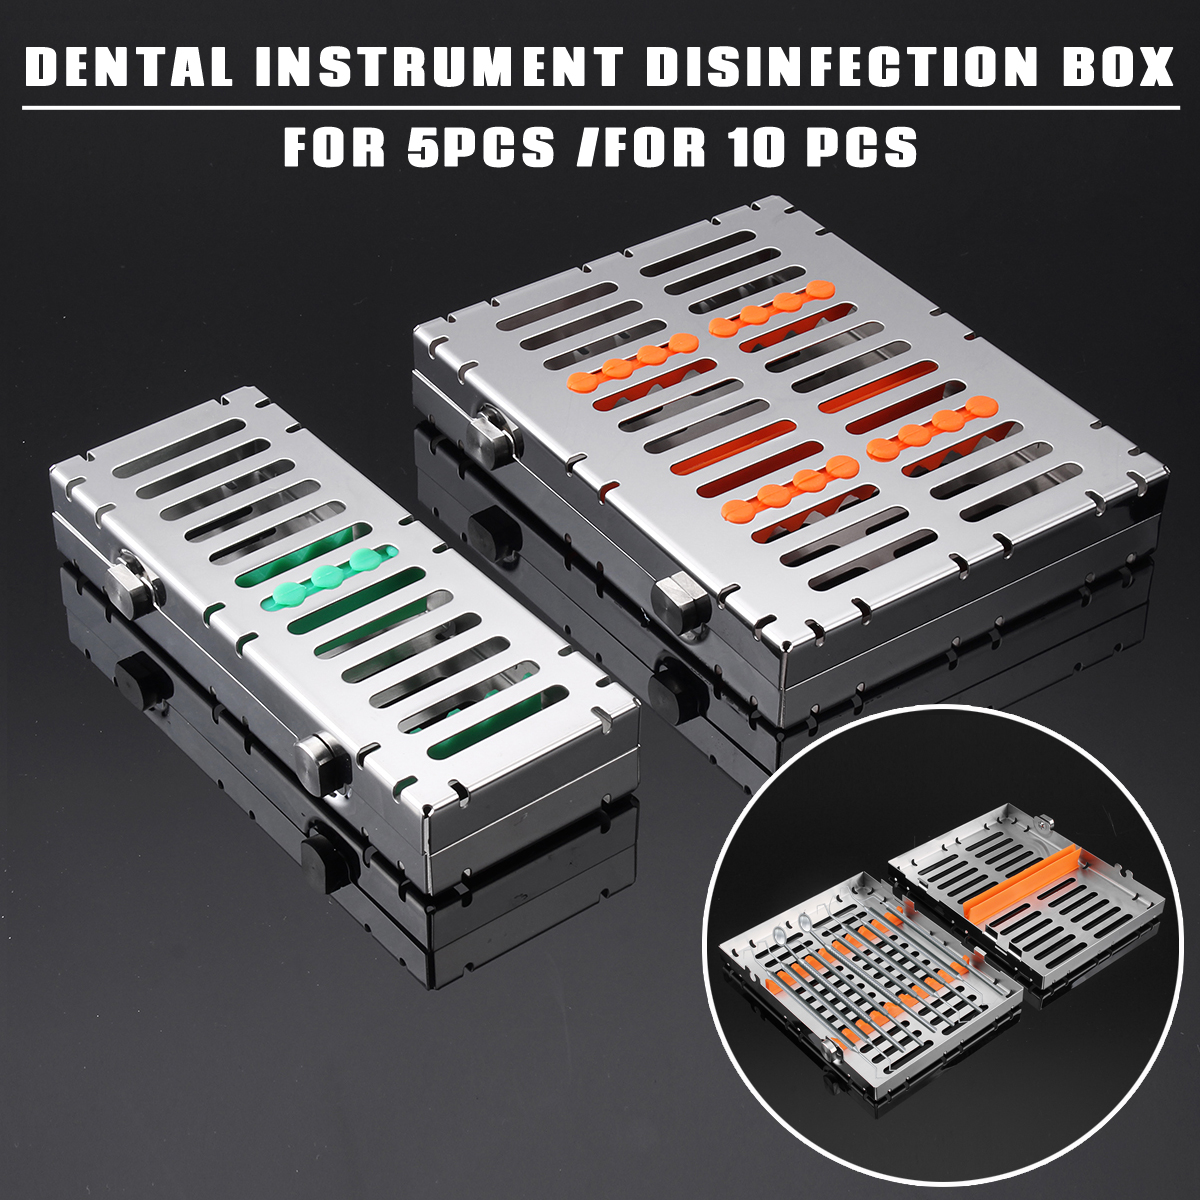 Stainless Steel Dental Sterilization Cassette Rack Tray Stand Autoclavebale Disinfection Holder For 5/10pc Surgical Instrument